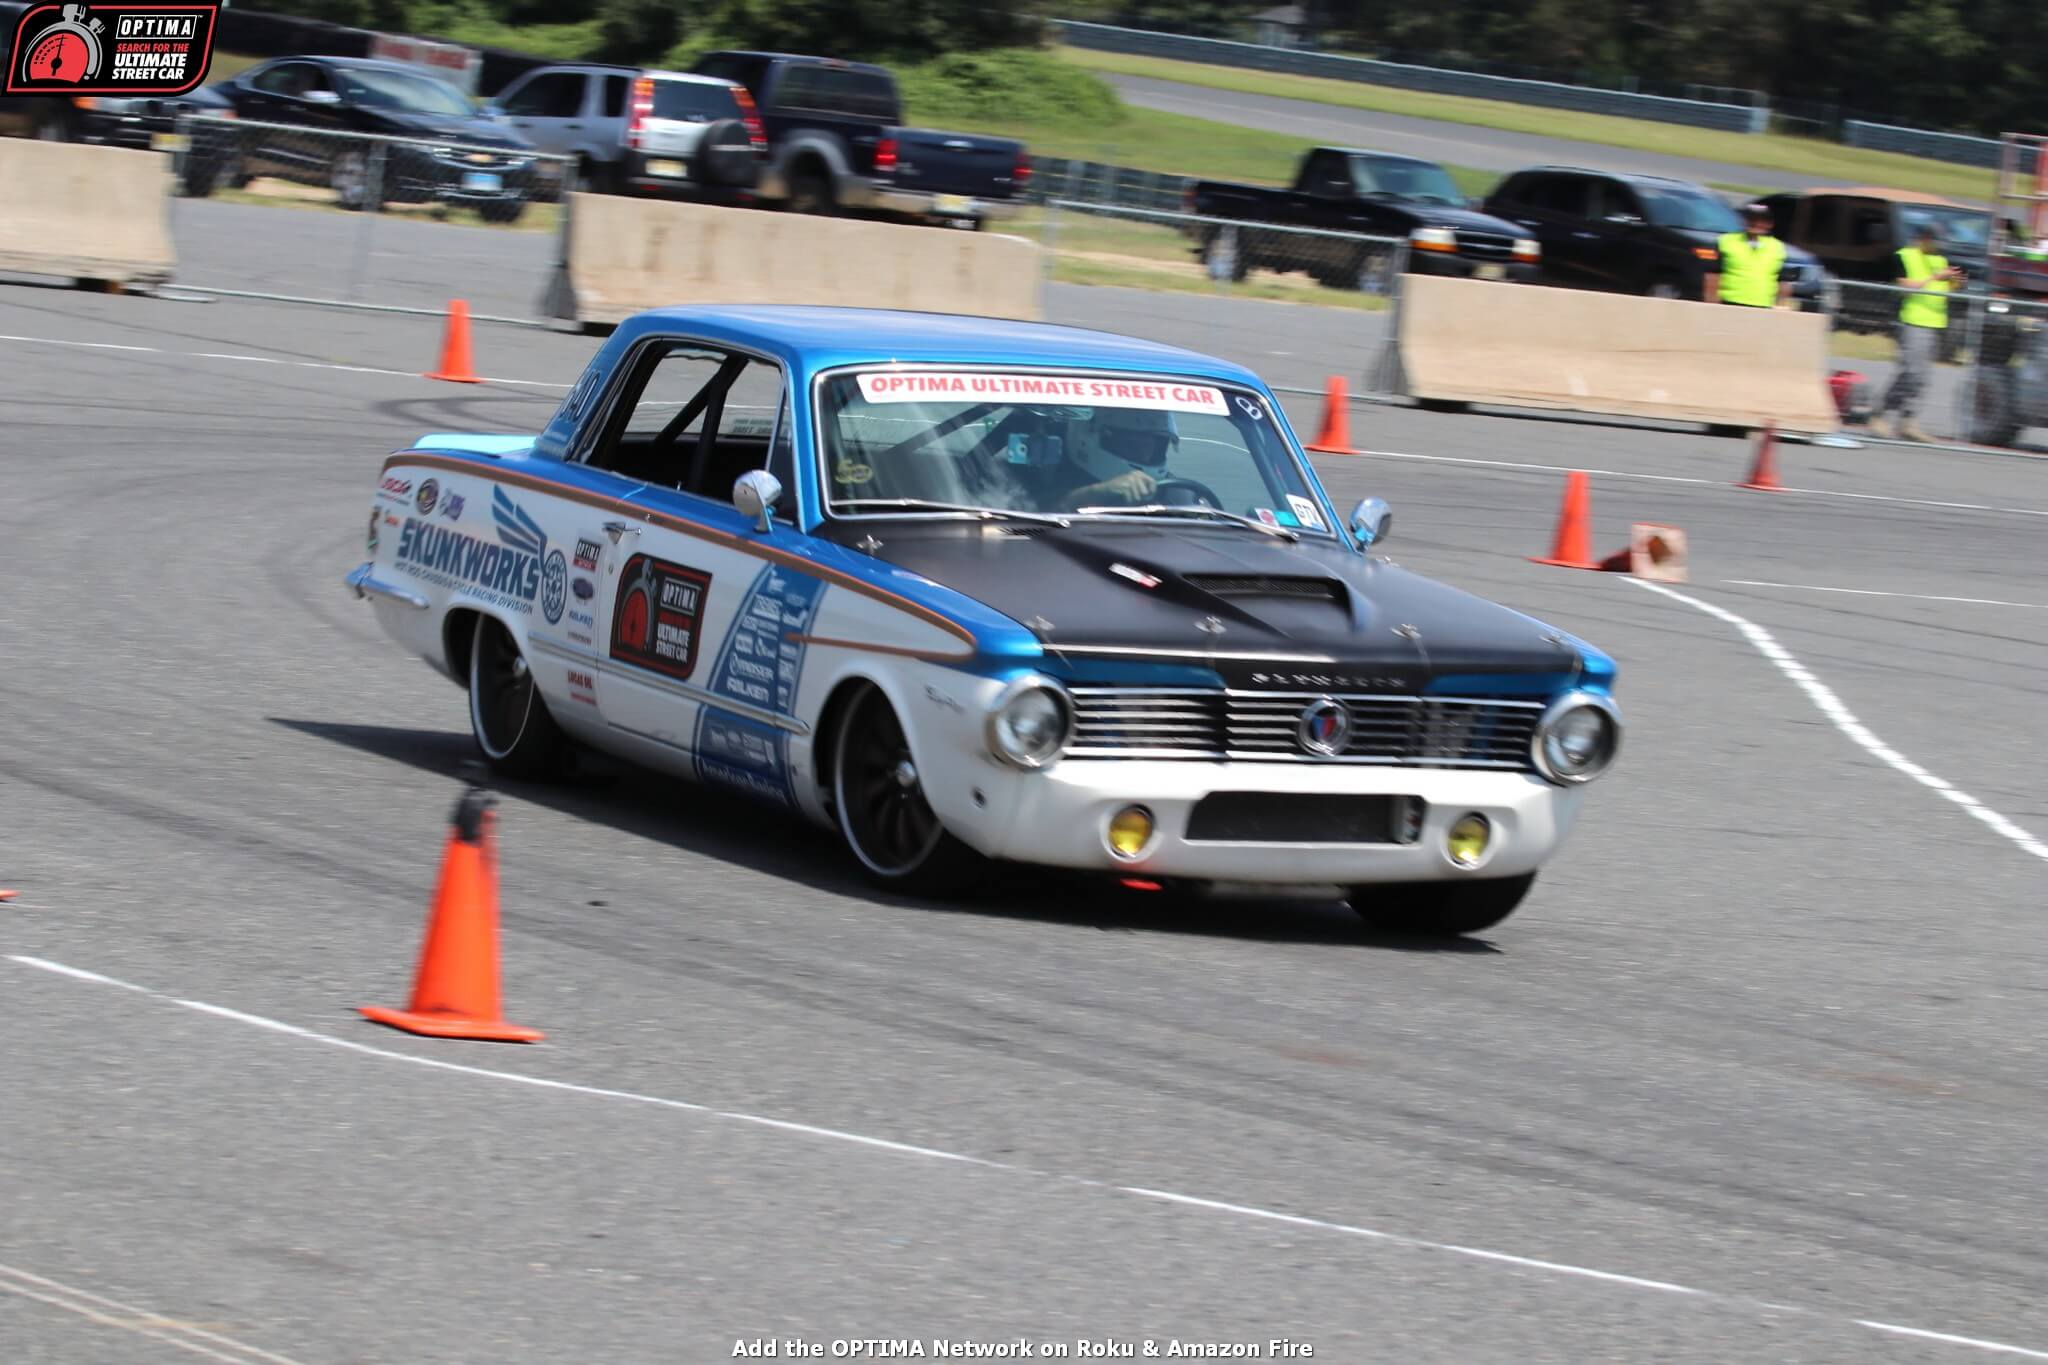 Kevin-Tully-1964-Plymouth-Valiant-DriveOPTIMA-NJMP-2017_260